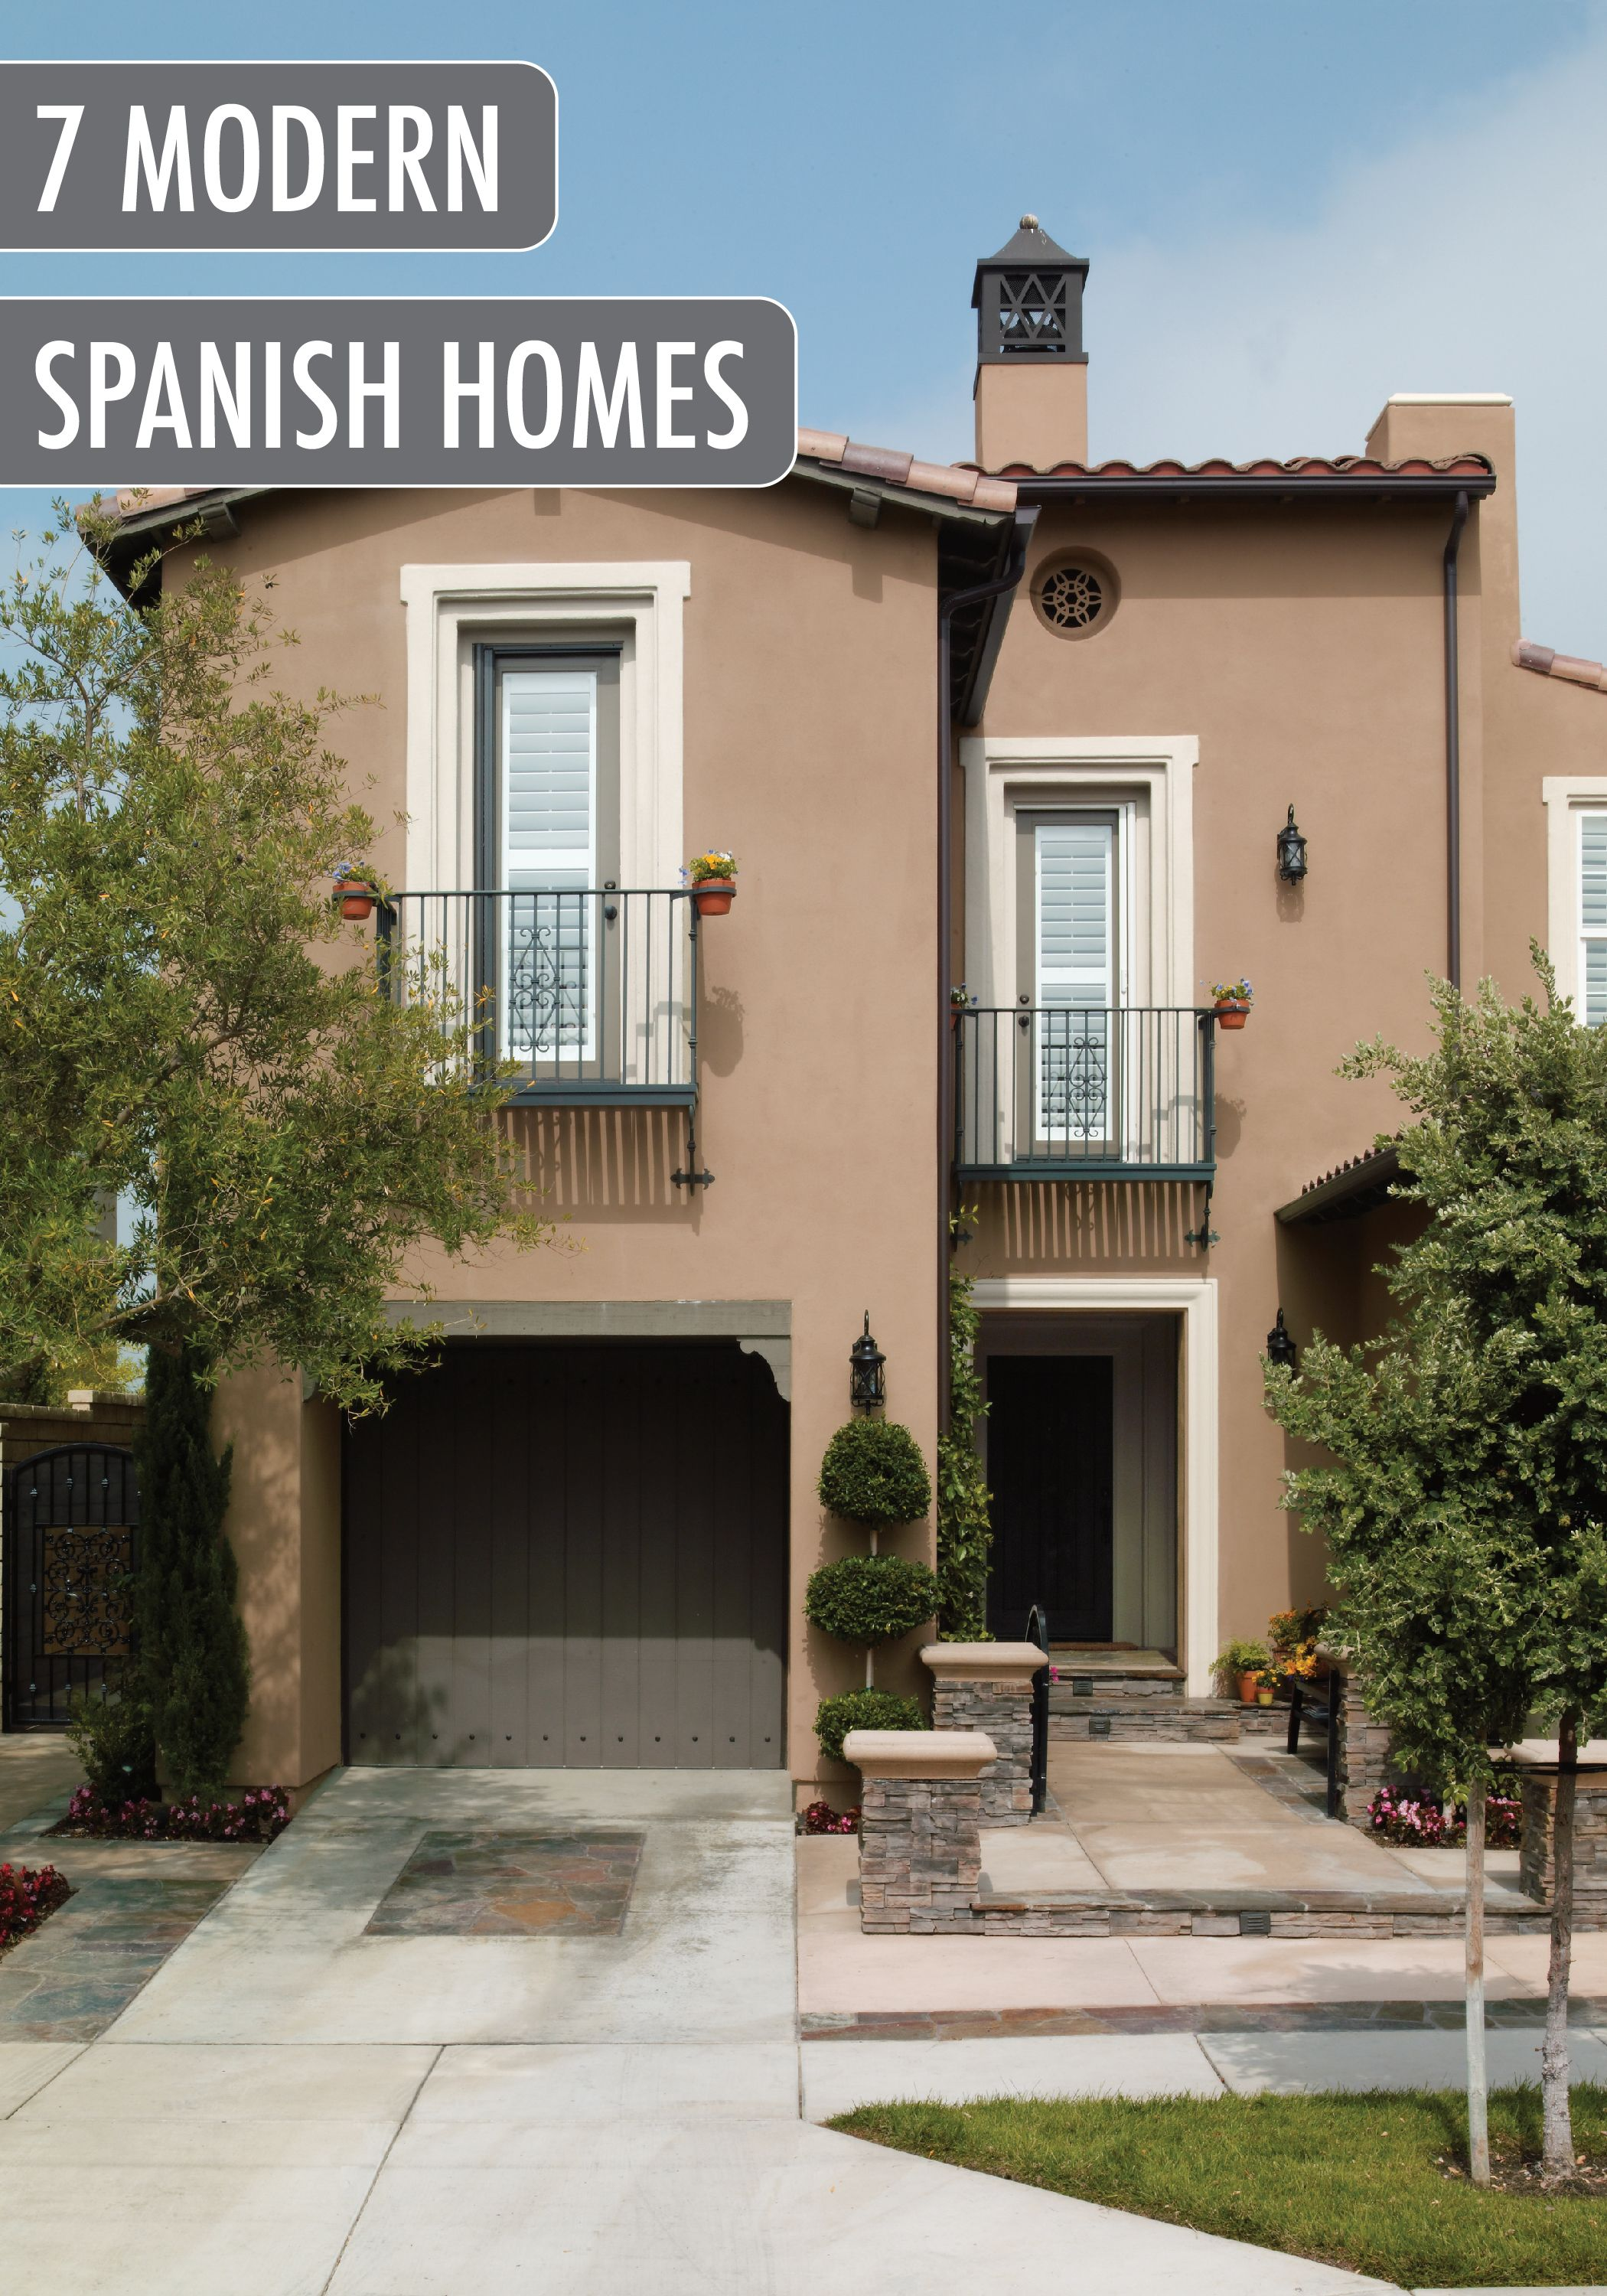 Spanish Style Homes Exterior Paint Colors : spanish, style, homes, exterior, paint, colors, Spanish, Mediterranean, Style, Paint, Gallery, Exterior, Colors, House,, House, Exterior,